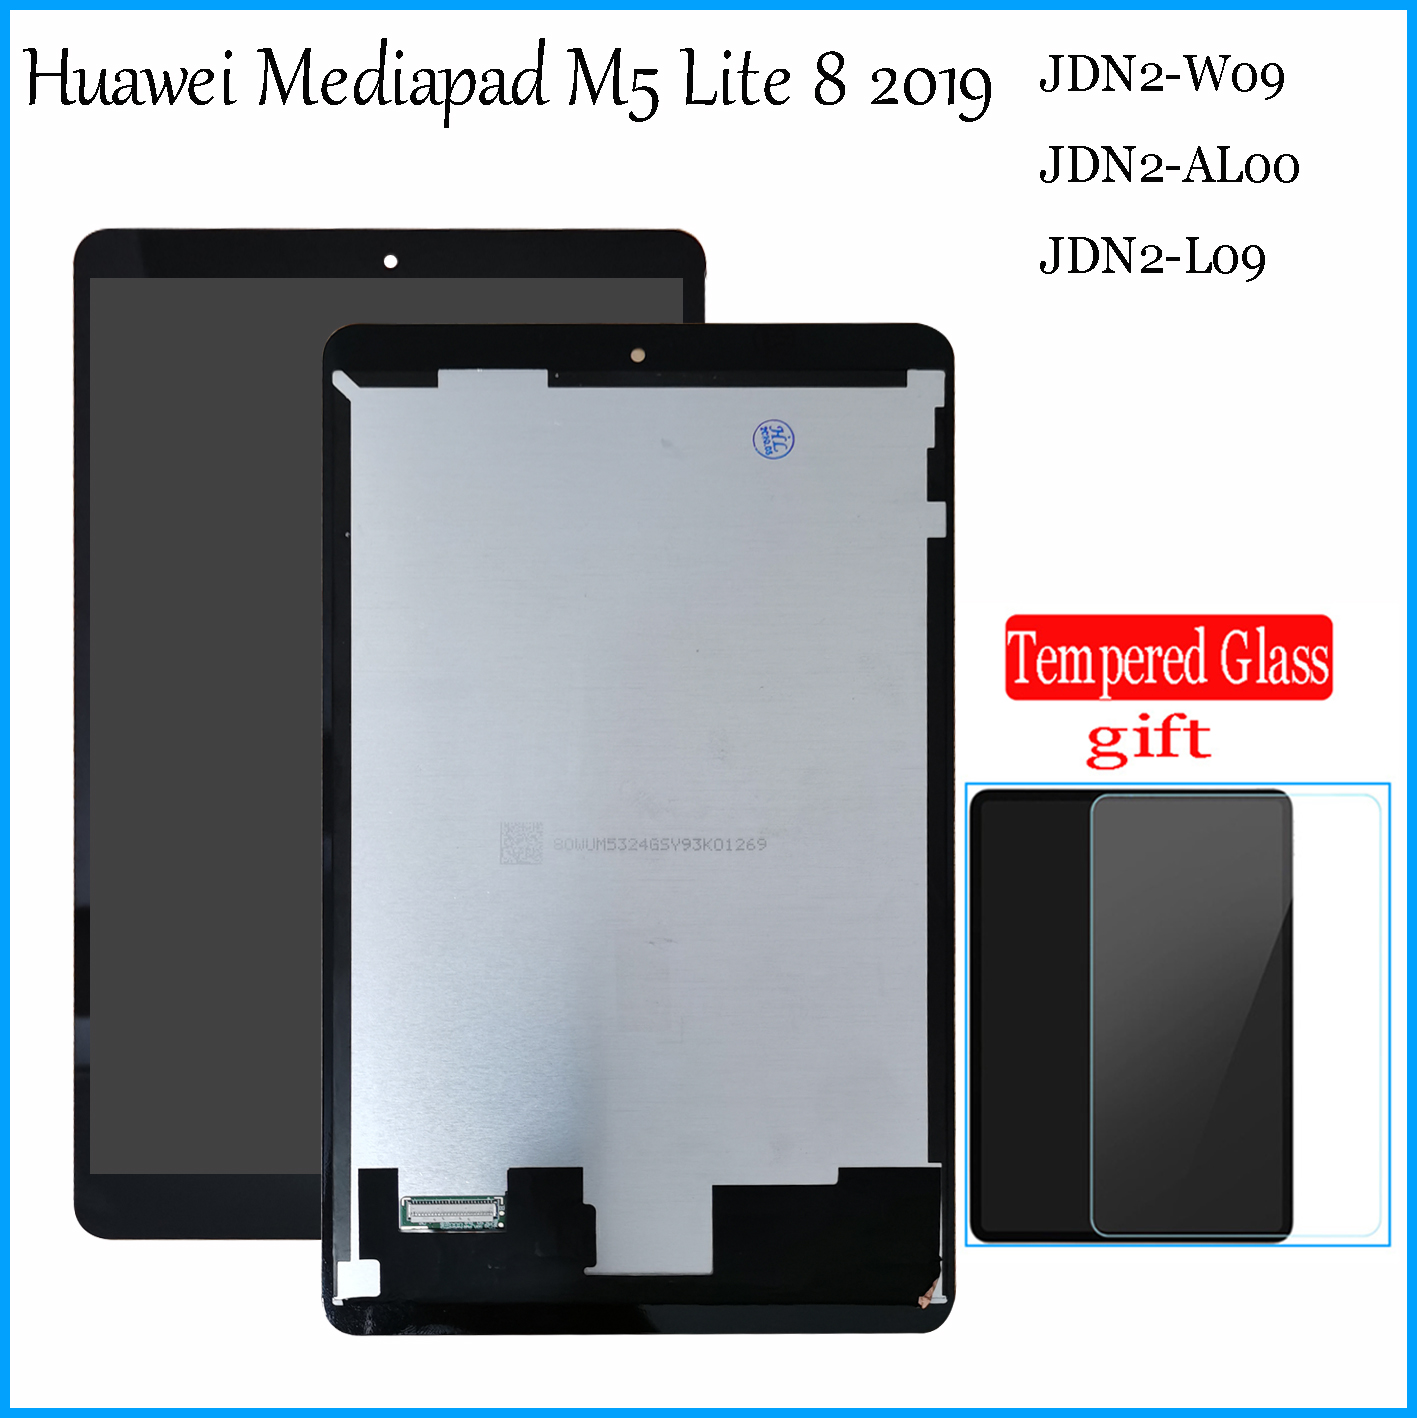 New 8.0Inch For Huawei Mediapad M5 Lite 8 2019 JDN2-W09 JDN2-AL00 JDN2-L09 LCD Display Touch Screen Digitizer Assembly